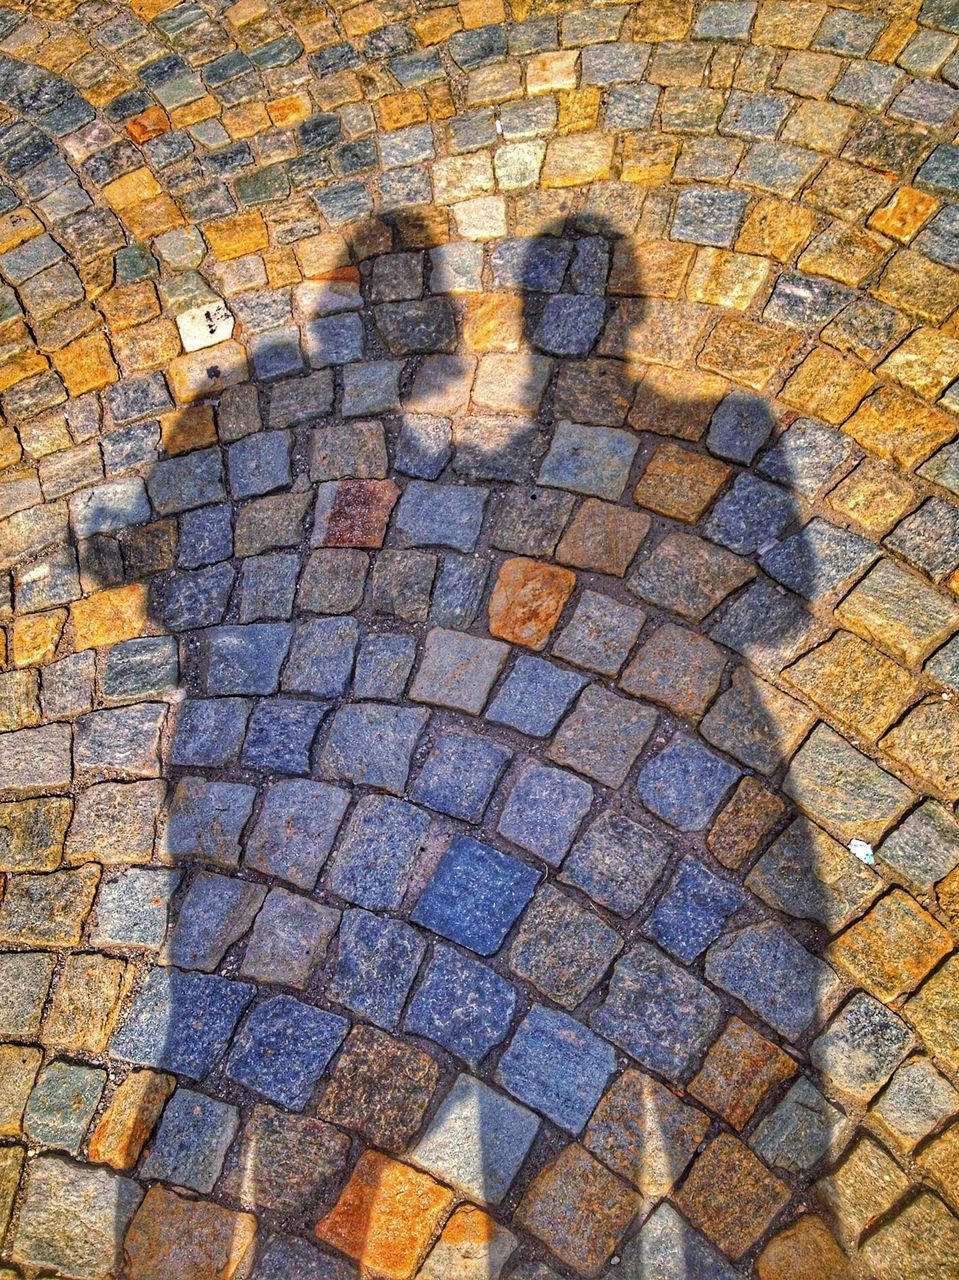 cobblestone, high angle view, day, street, no people, outdoors, full frame, stone tile, textured, close-up